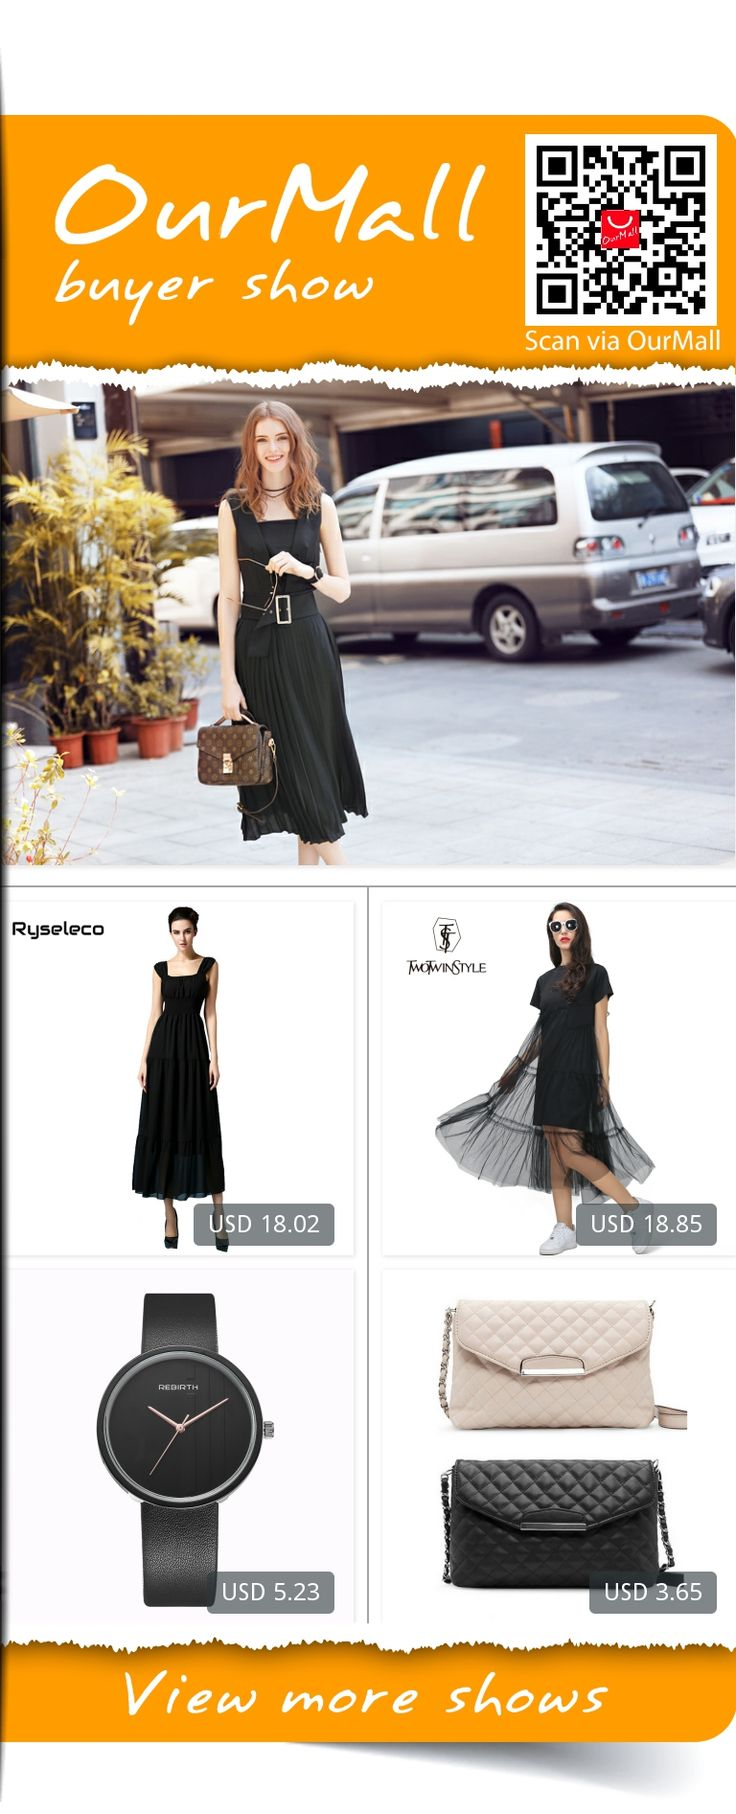 black and brown color with sleeveless dress, , http://ourmall.com/r/EzAn22 #shirt #Tshirt #jeans #bag #women #top #dress #skirt #cap #sunglass #denim #pant #shortsleeve #spring #fashion #sweater #ring #belt #female #lookbook #outoftheday #ootd #outfit #pant #hat #necklace #shorts #top #shoes #heel #jacket #coat #outerwear #flat #handbag #crossbag #clothes